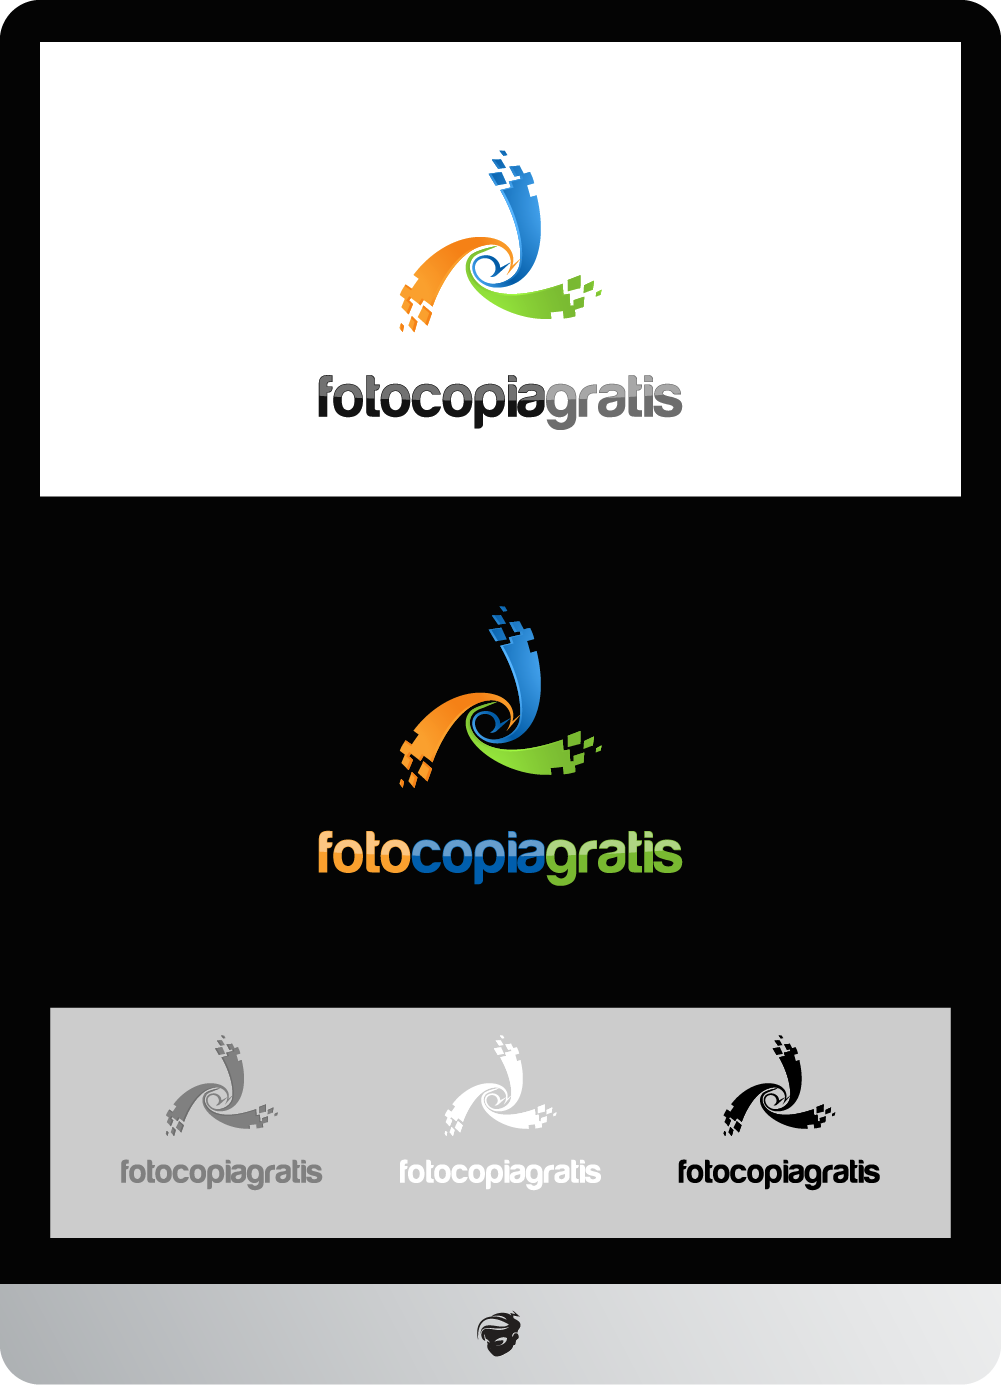 Logo Design by zesthar - Entry No. 115 in the Logo Design Contest Inspiring Logo Design for Fotocopiagratis.